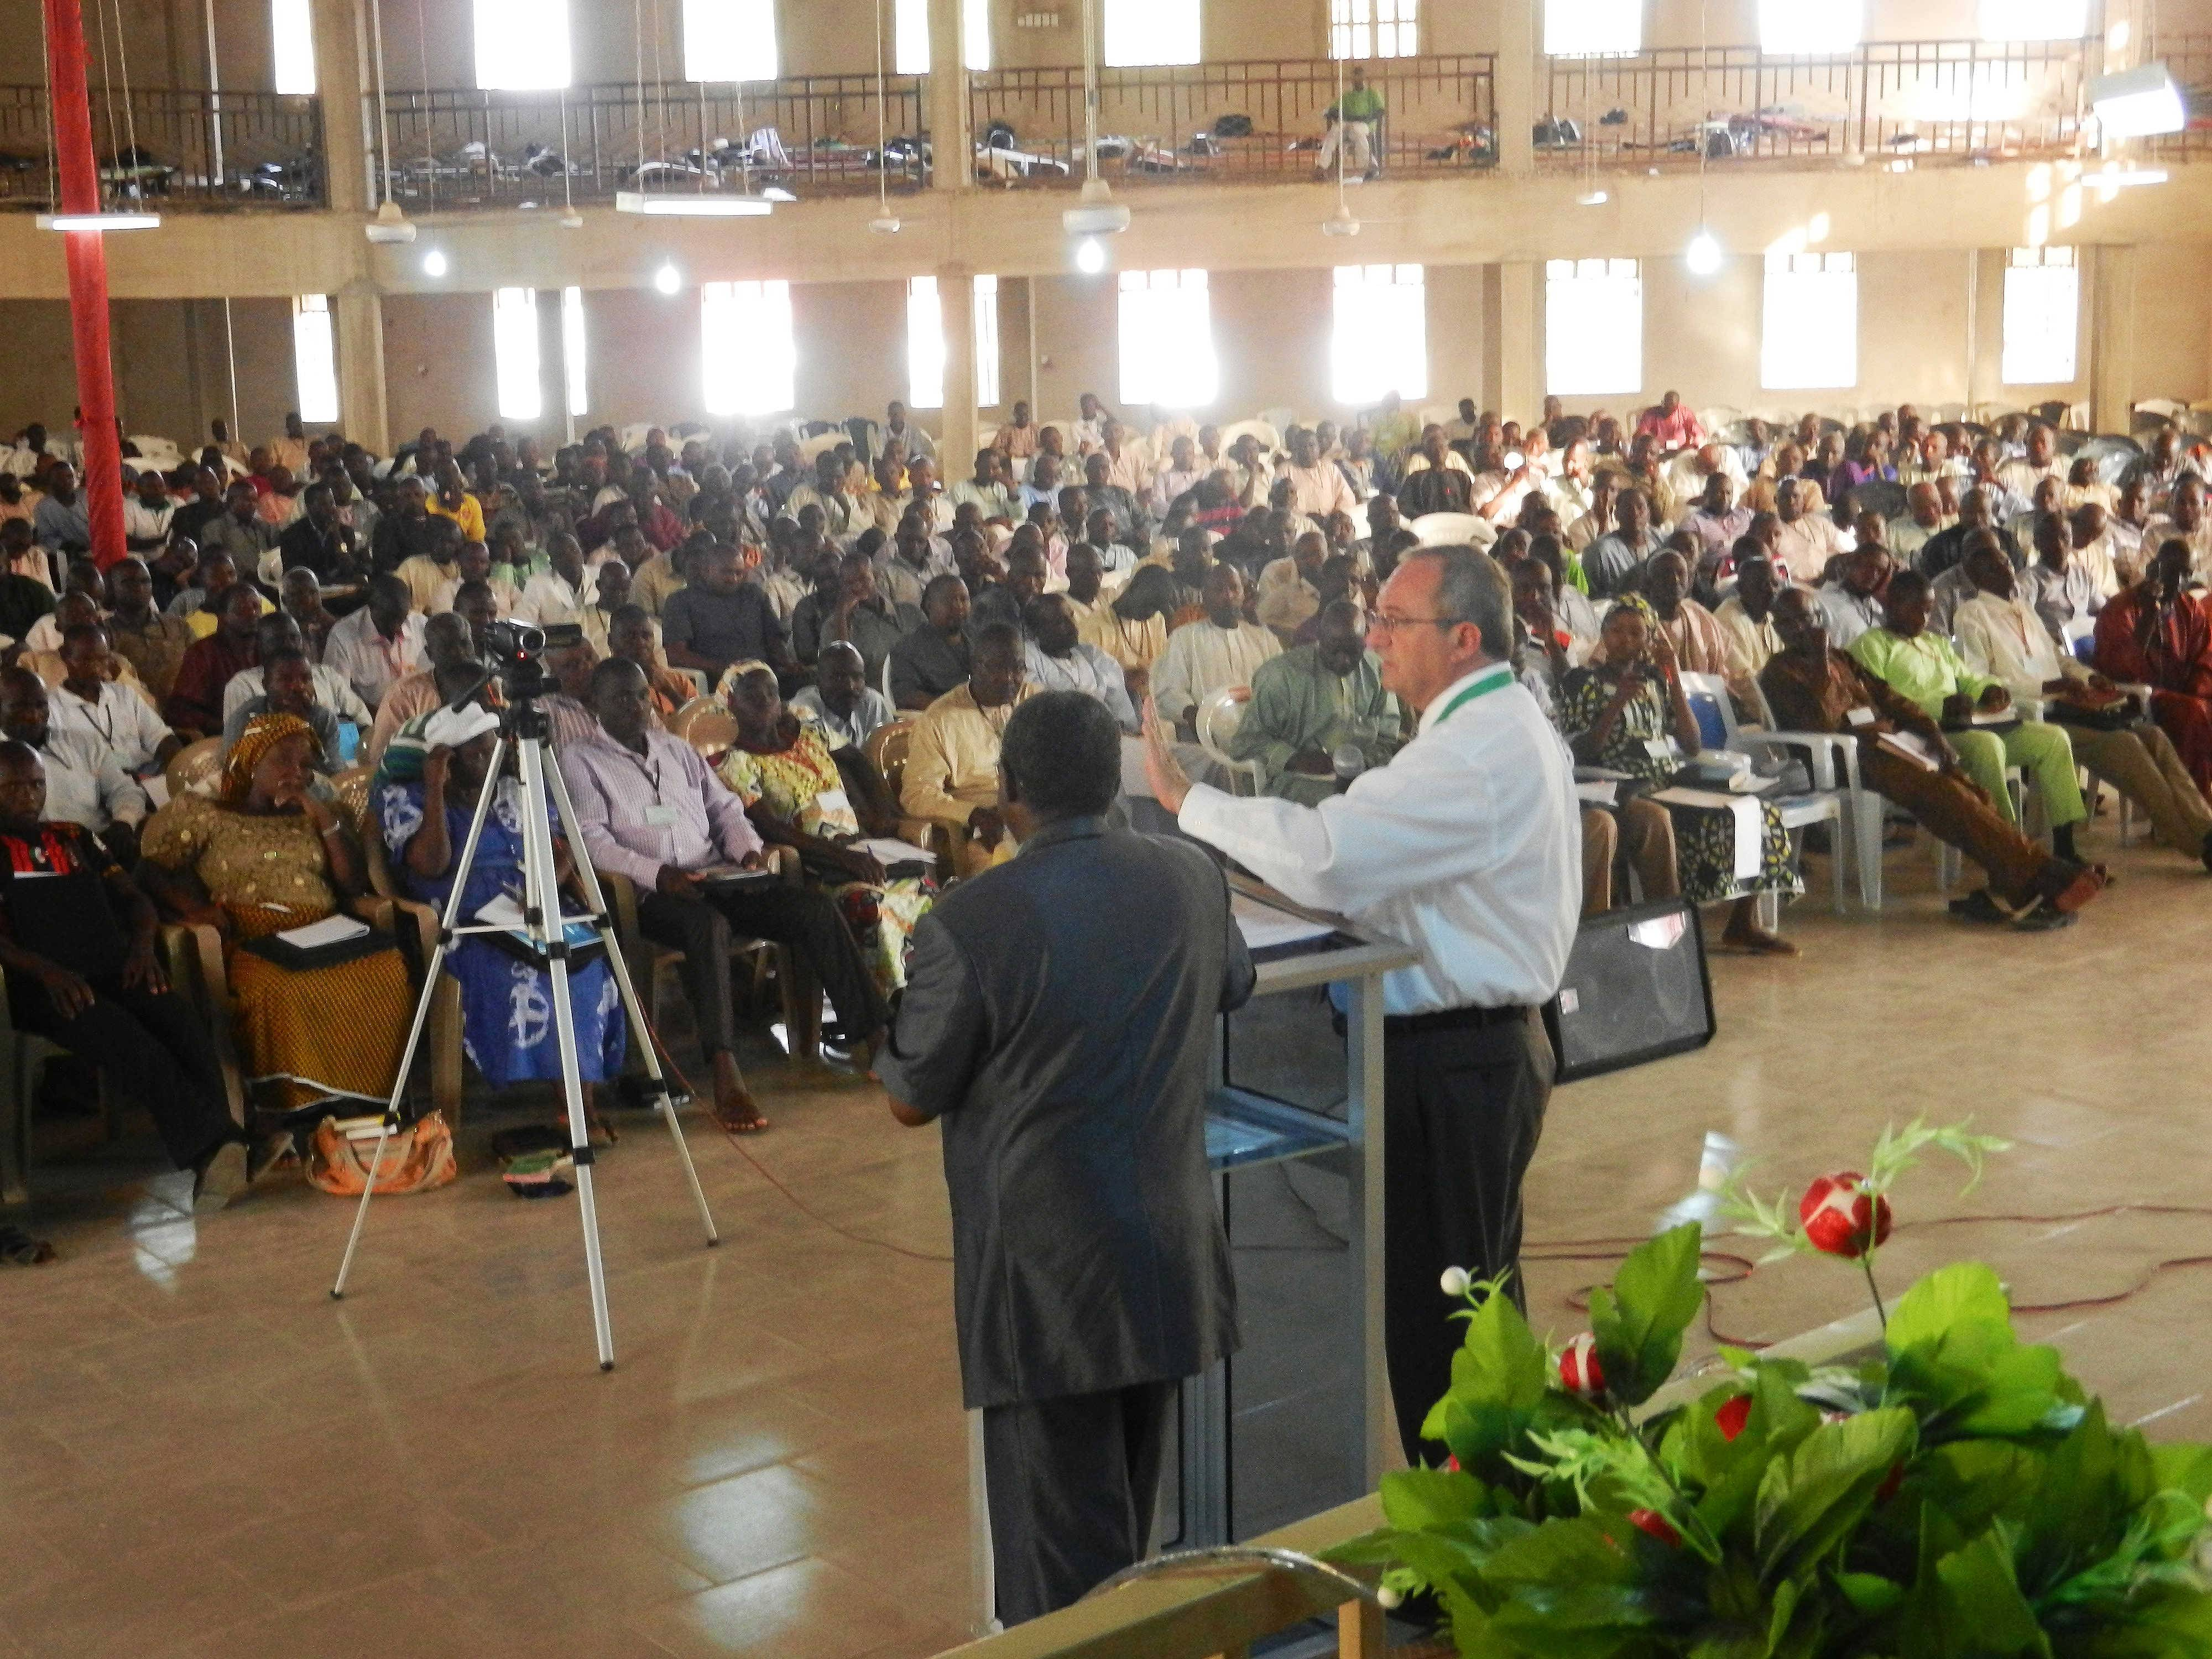 Stanley Noffsinger, general secretary for the Church of the Brethren, speaks the week of April 7 at the annual conference of Ekklesiyar Yan'uwa a Nigeria, the Elgin-based church's sister church in Nigeria.